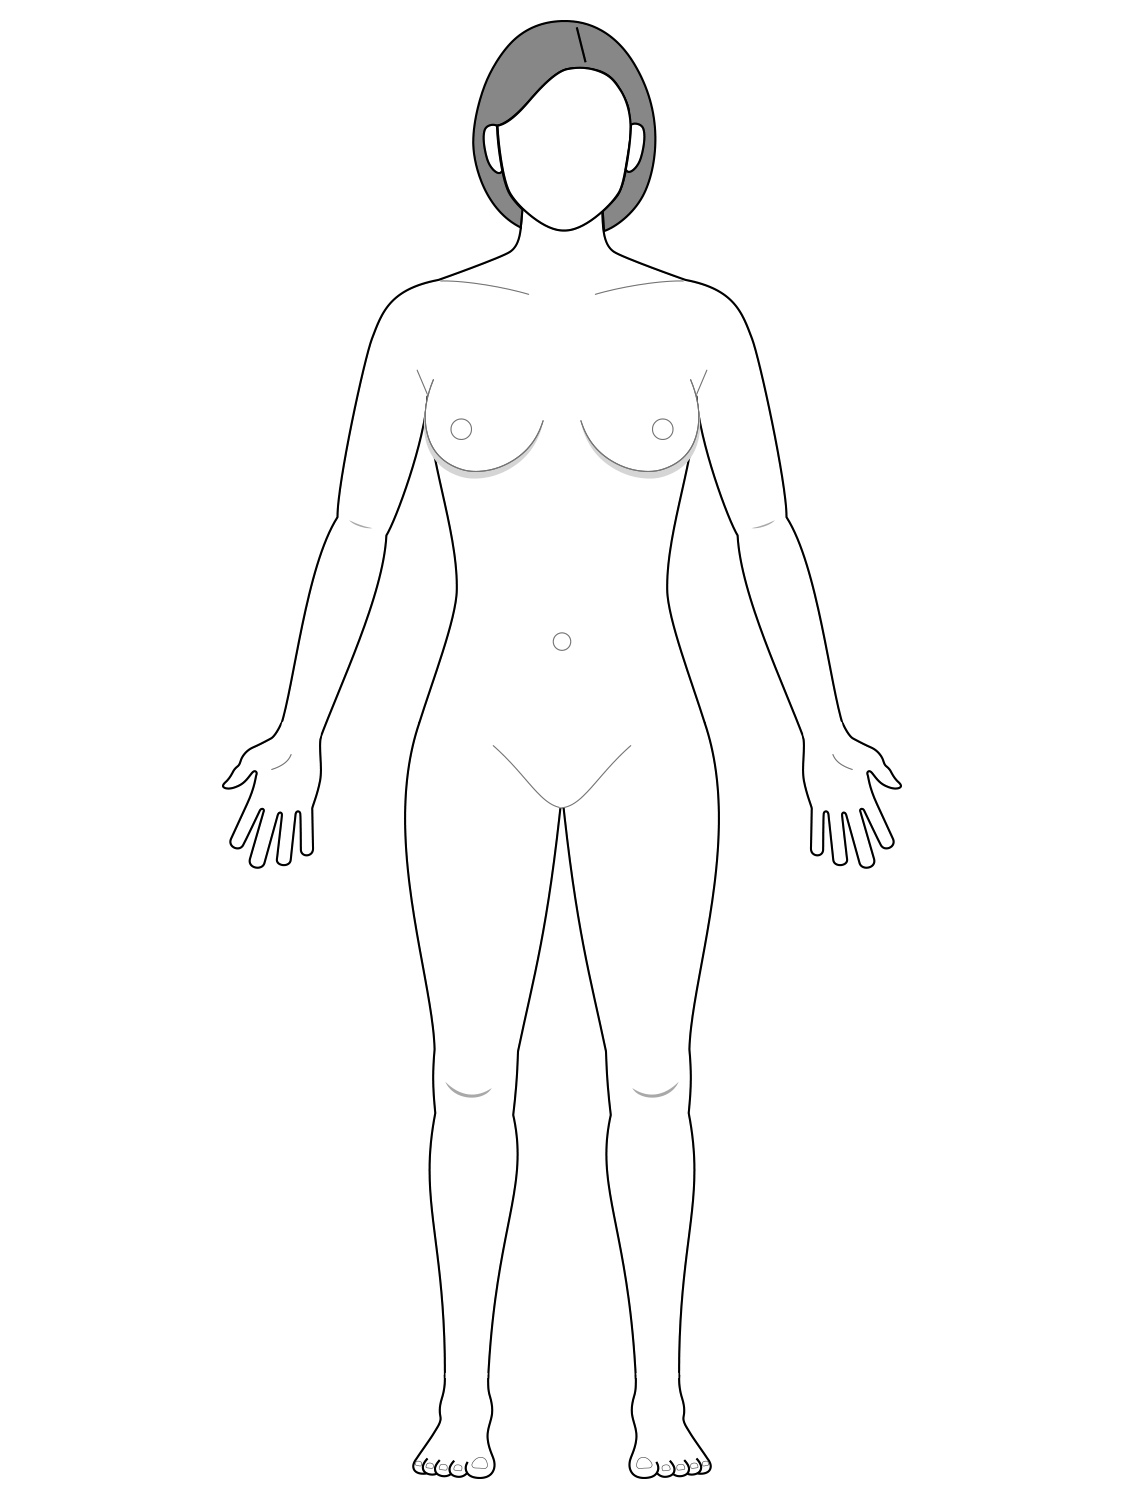 Anatomical position - female